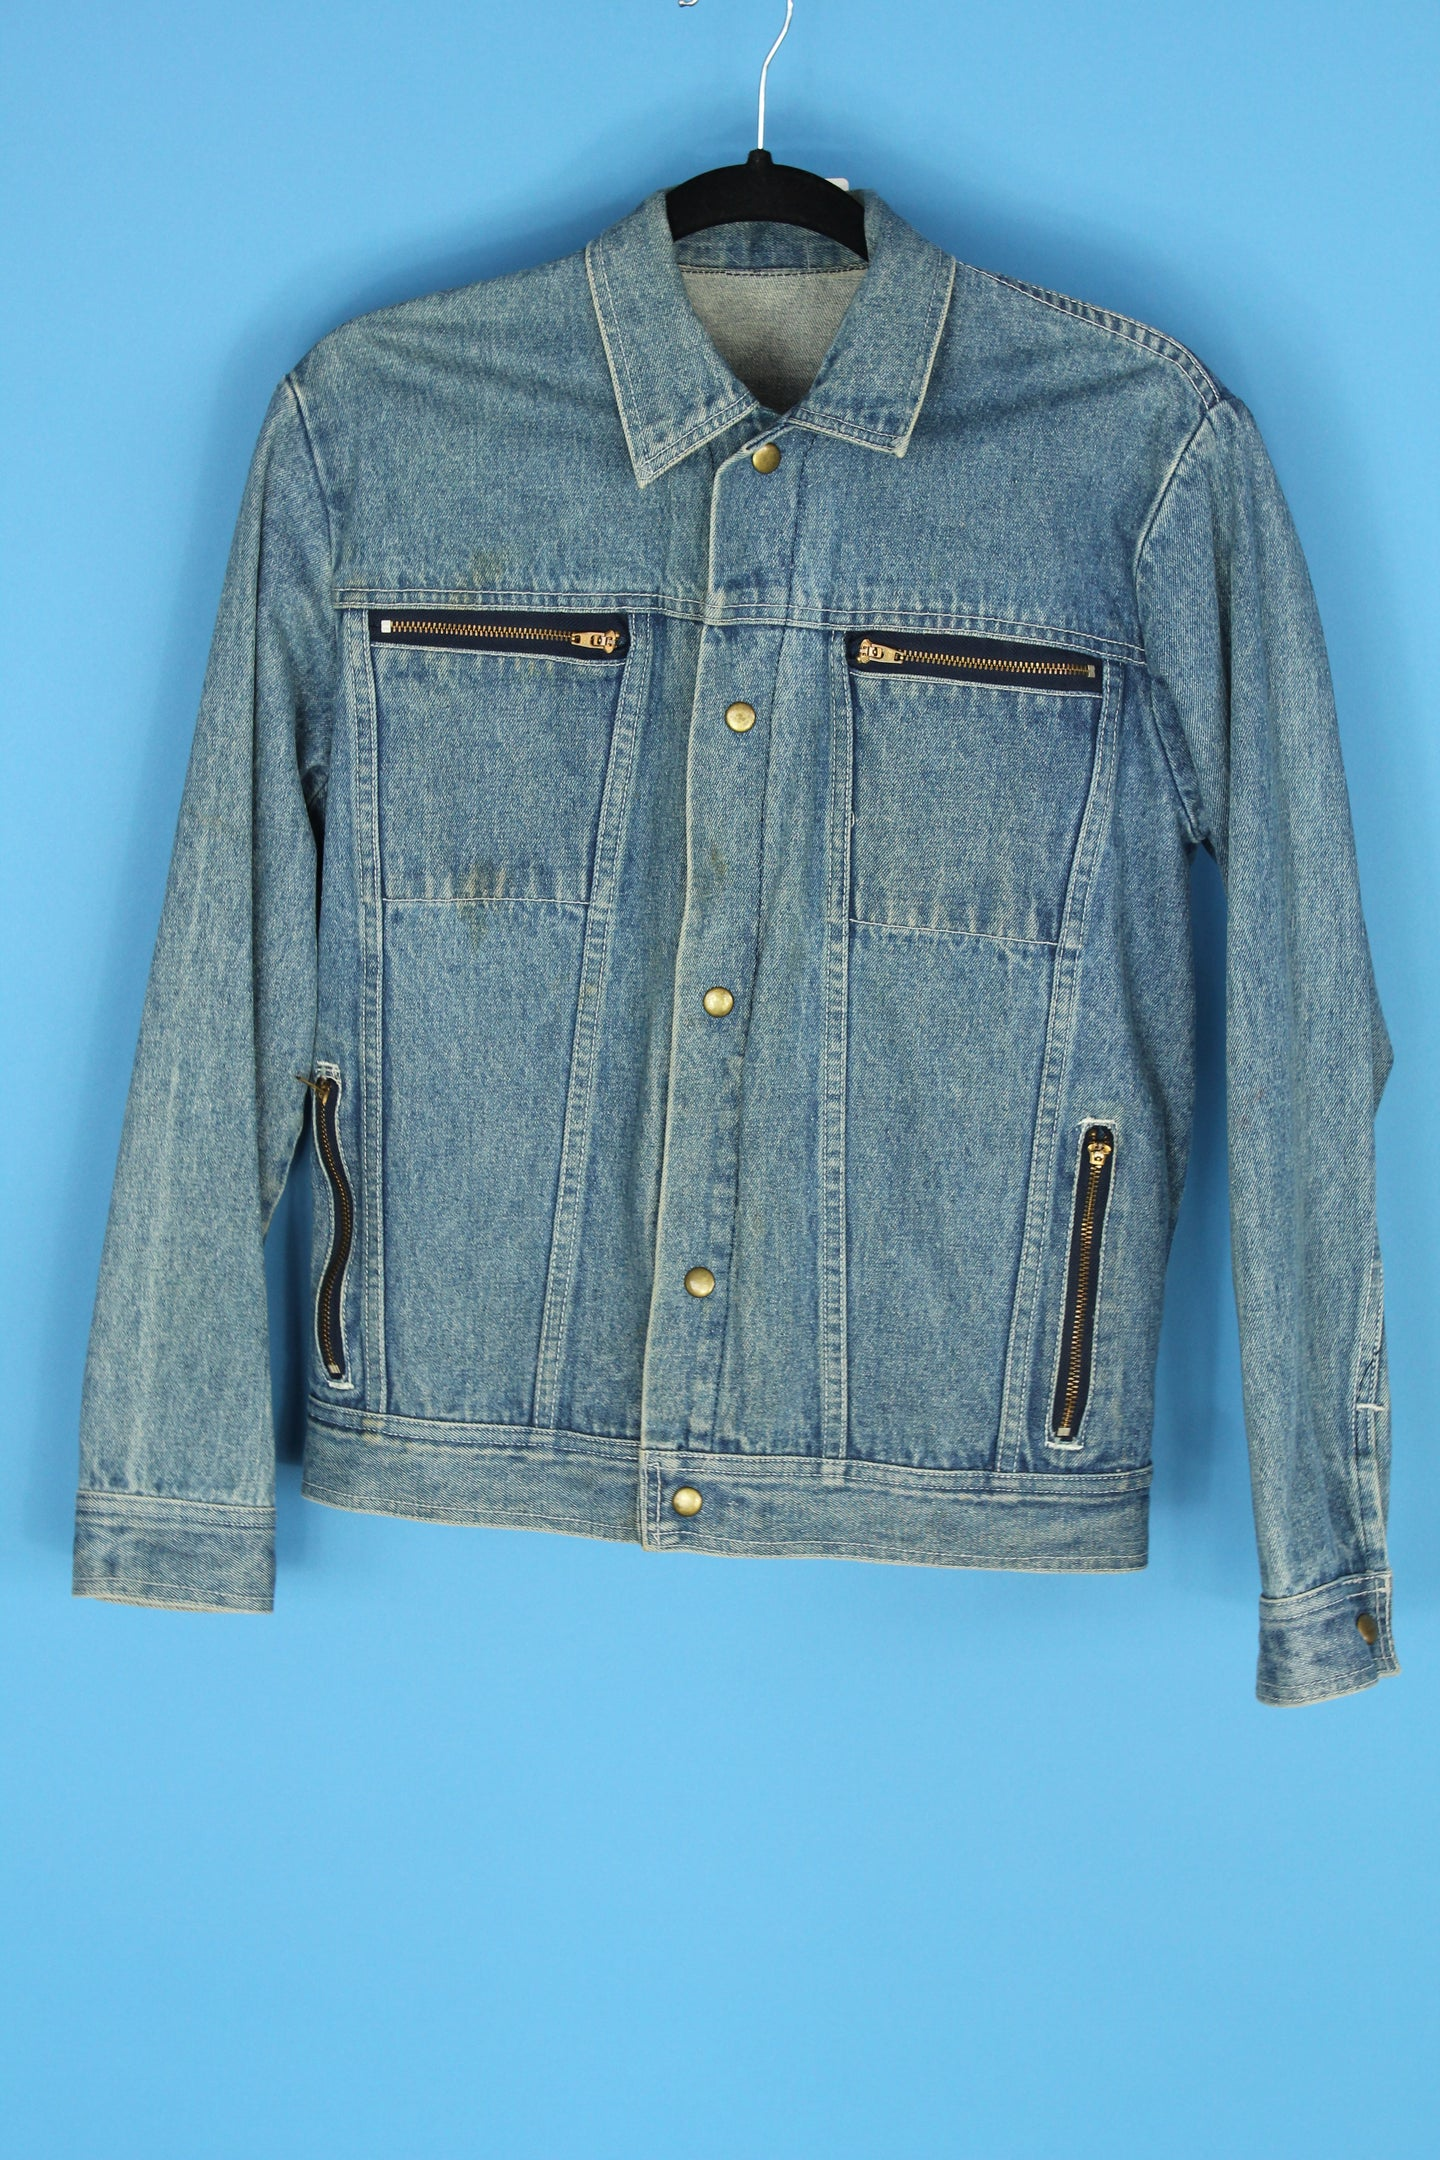 1970s Denim Jacket